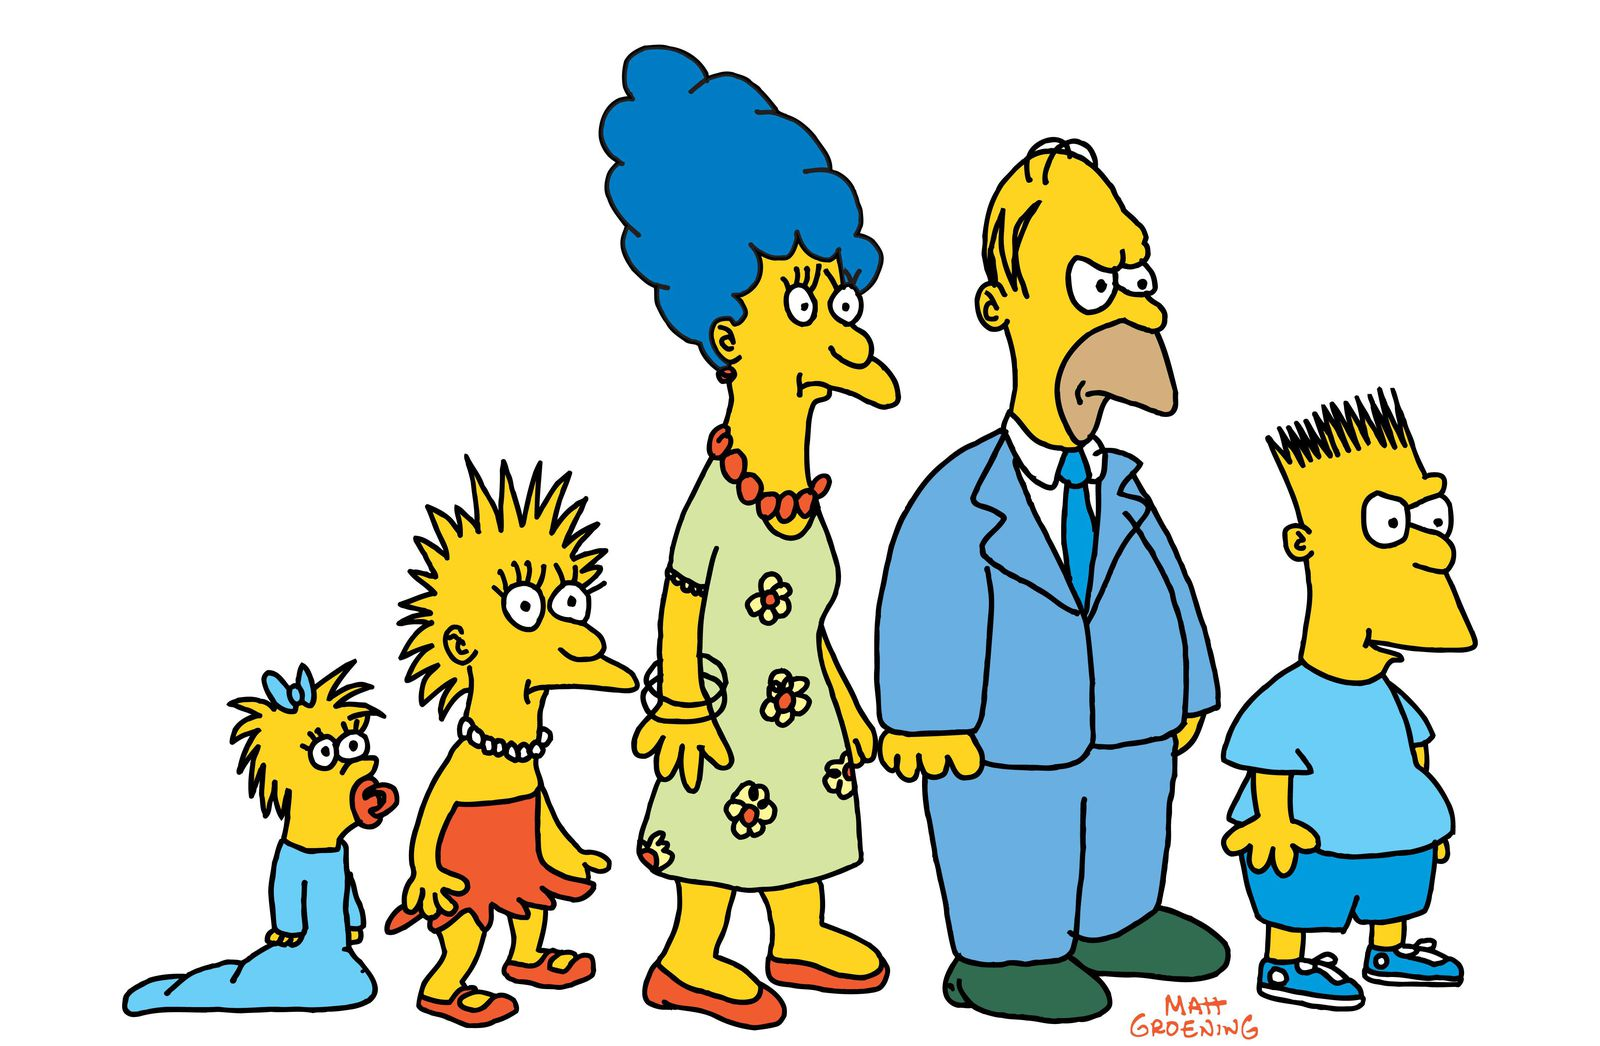 The Simpson Family Made Its Television Debut 30 Years Ago | Arts & Culture